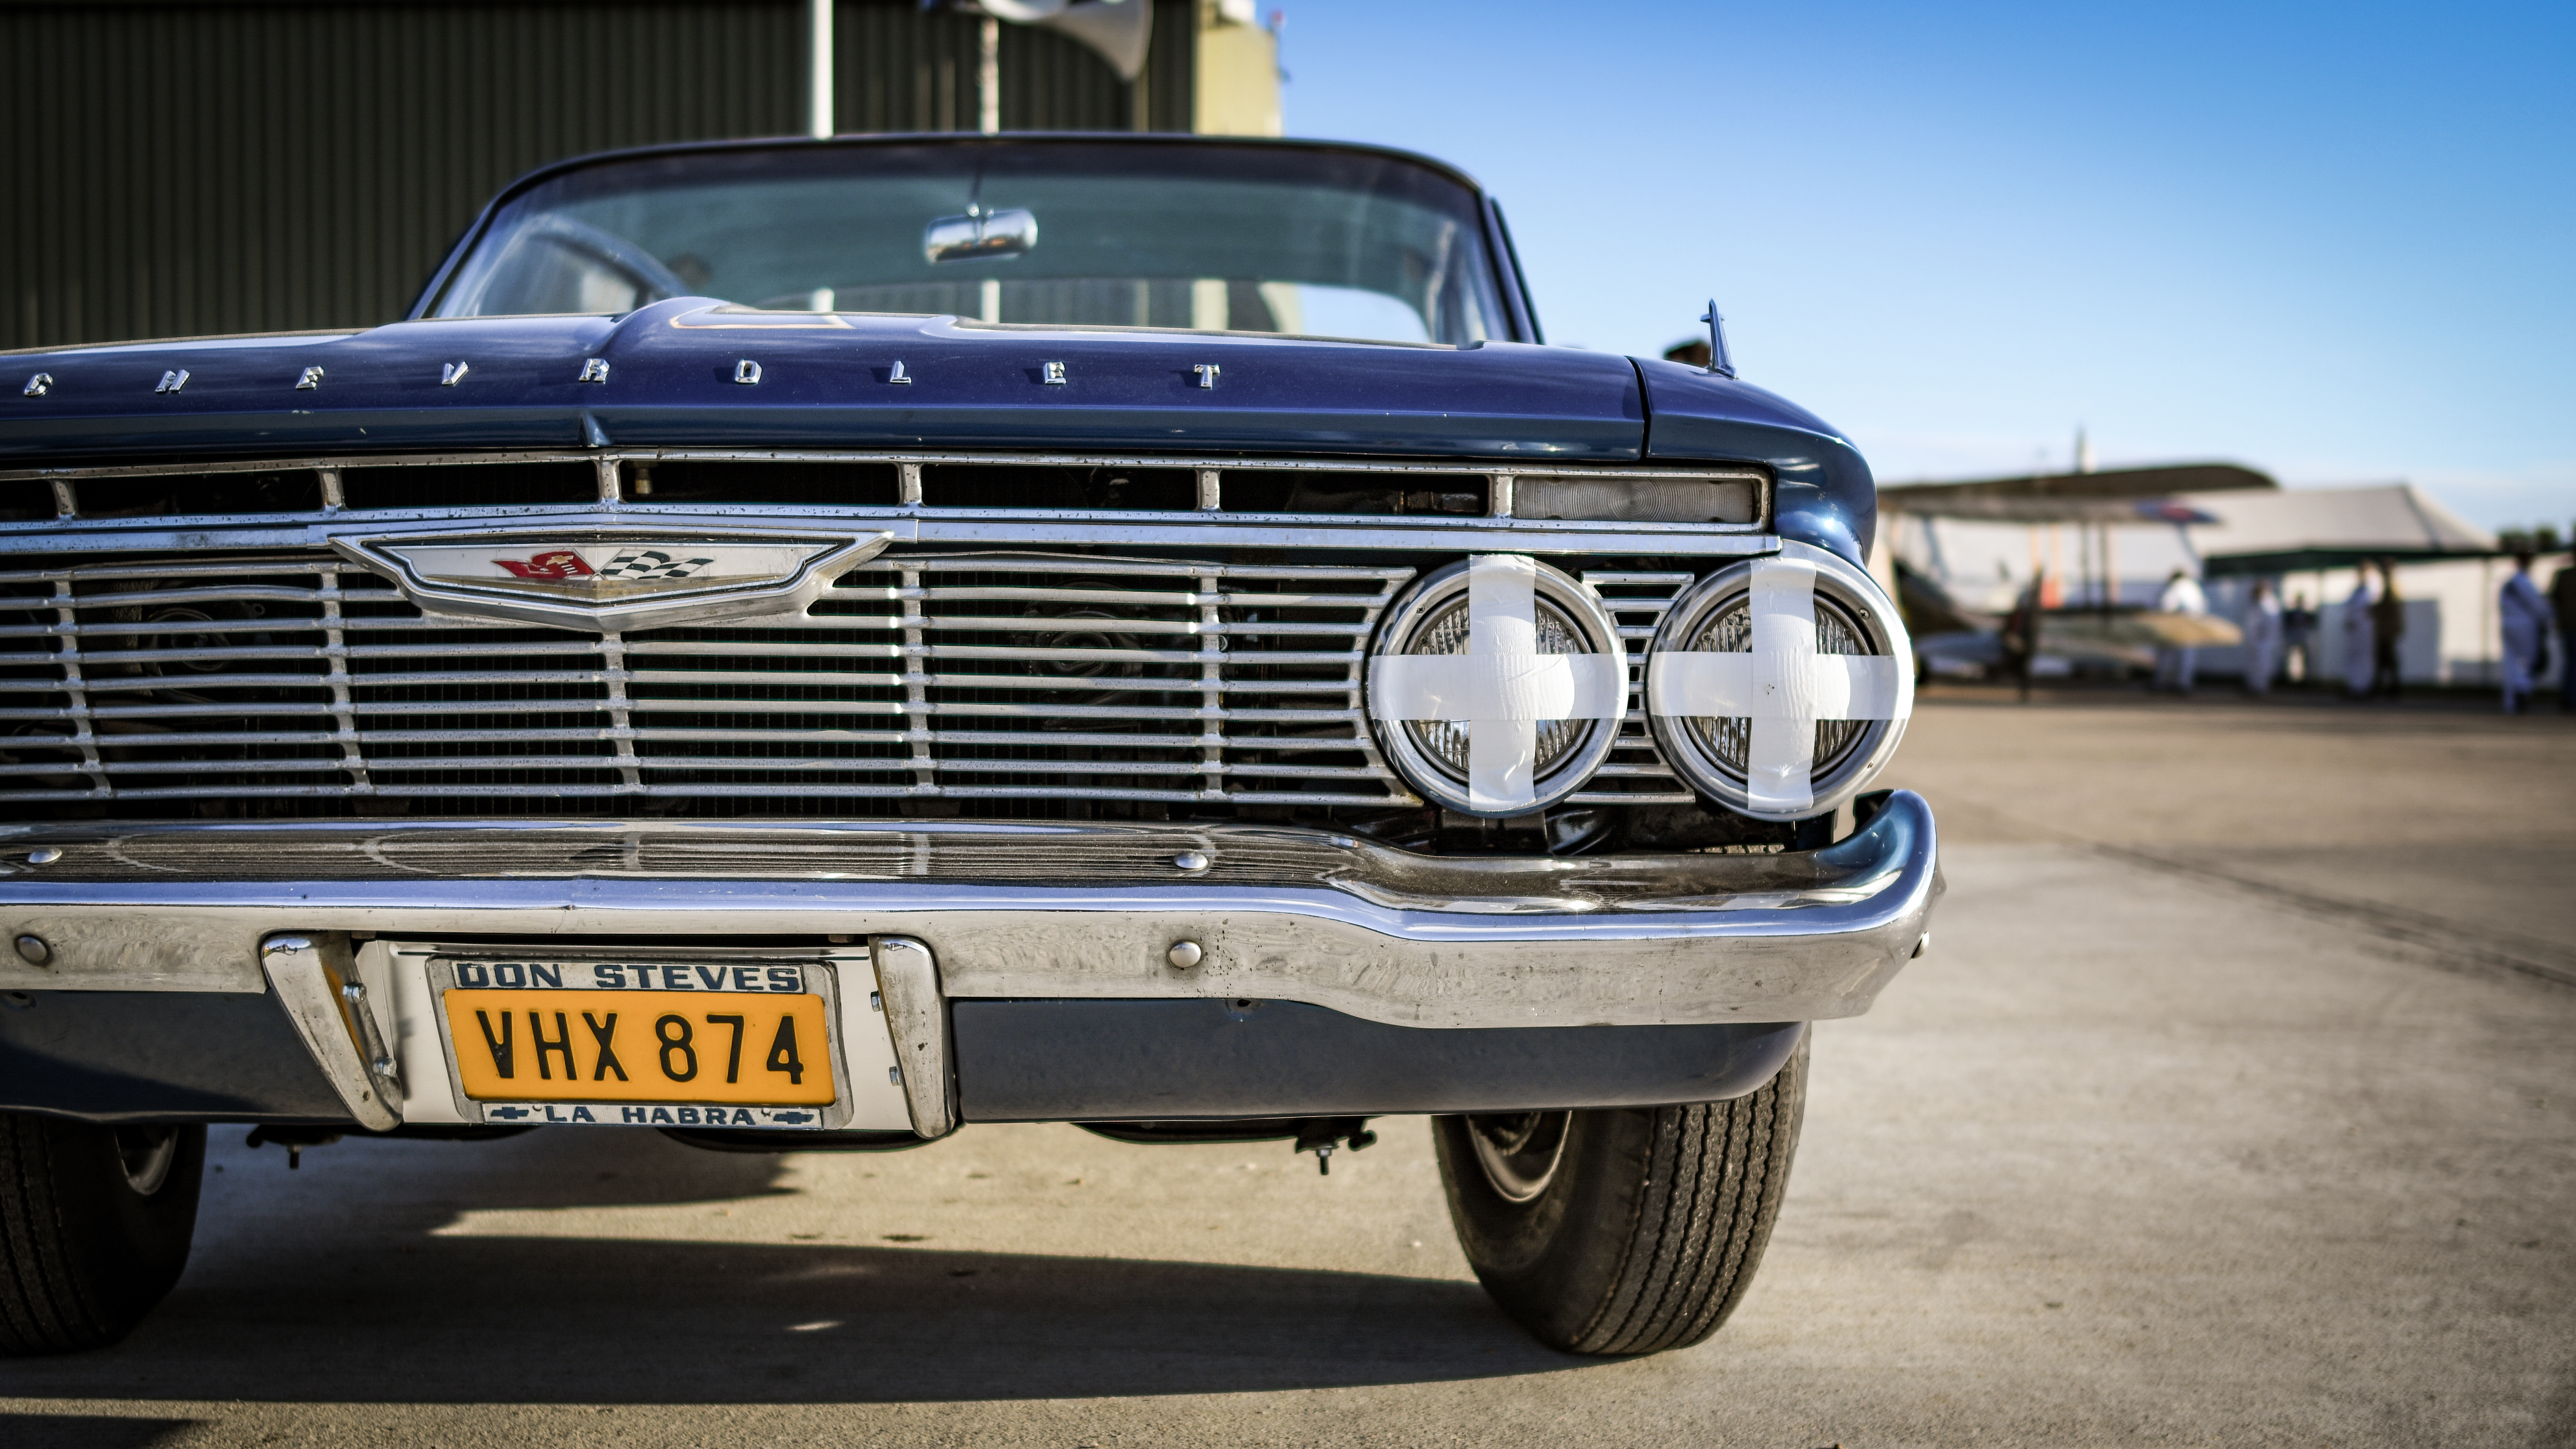 A story on talent, American muscle power, and a unique barn find.